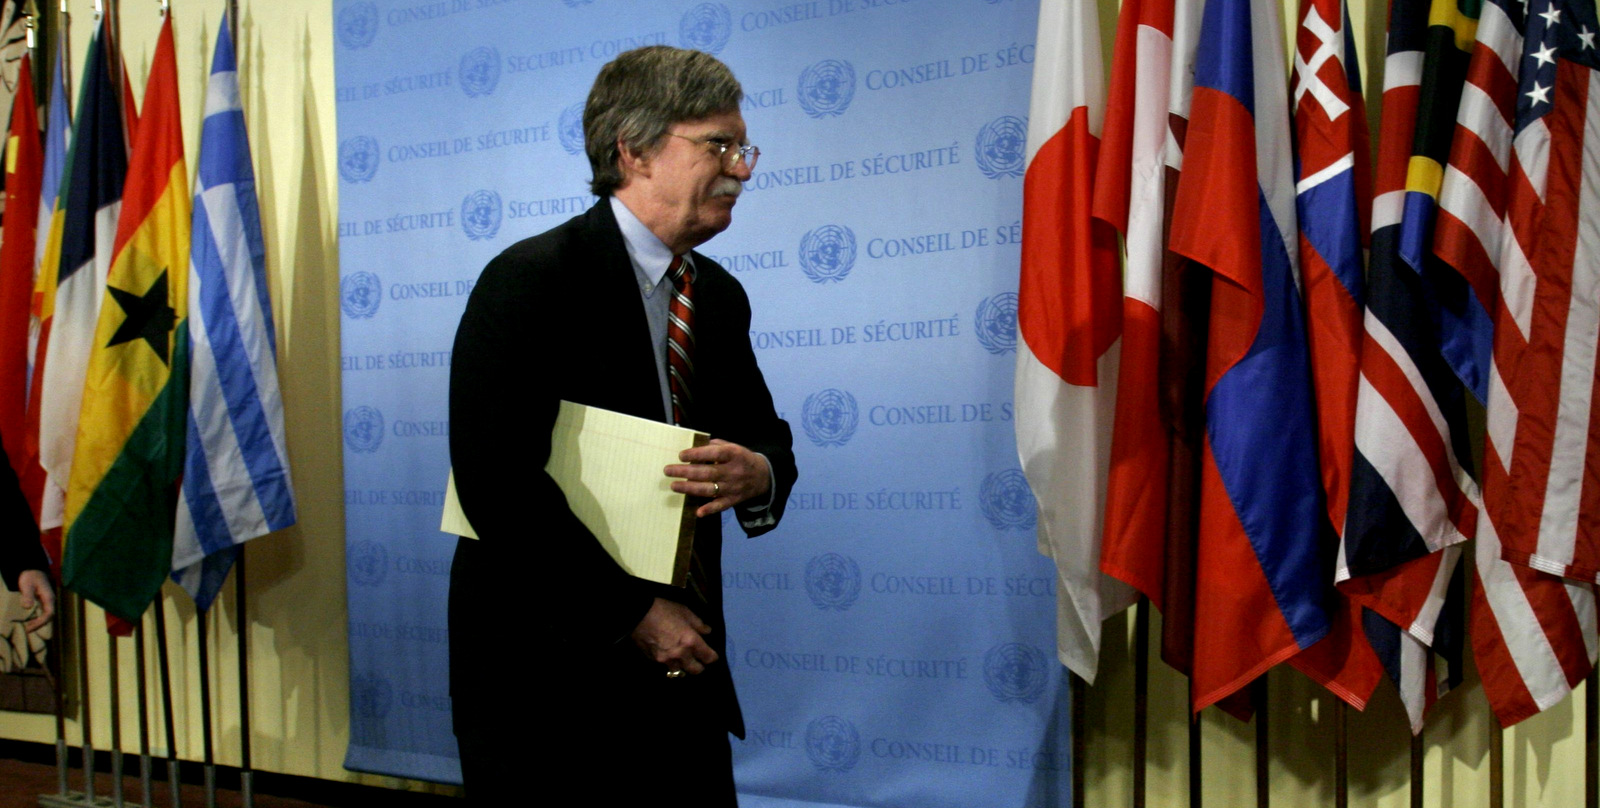 John Bolton, then acting U.S. United Nations Ambassador, arrives for a meeting on North Korea at the UN Security Council in New York, Oct. 13, 2006. (AP/Bebeto Matthews)